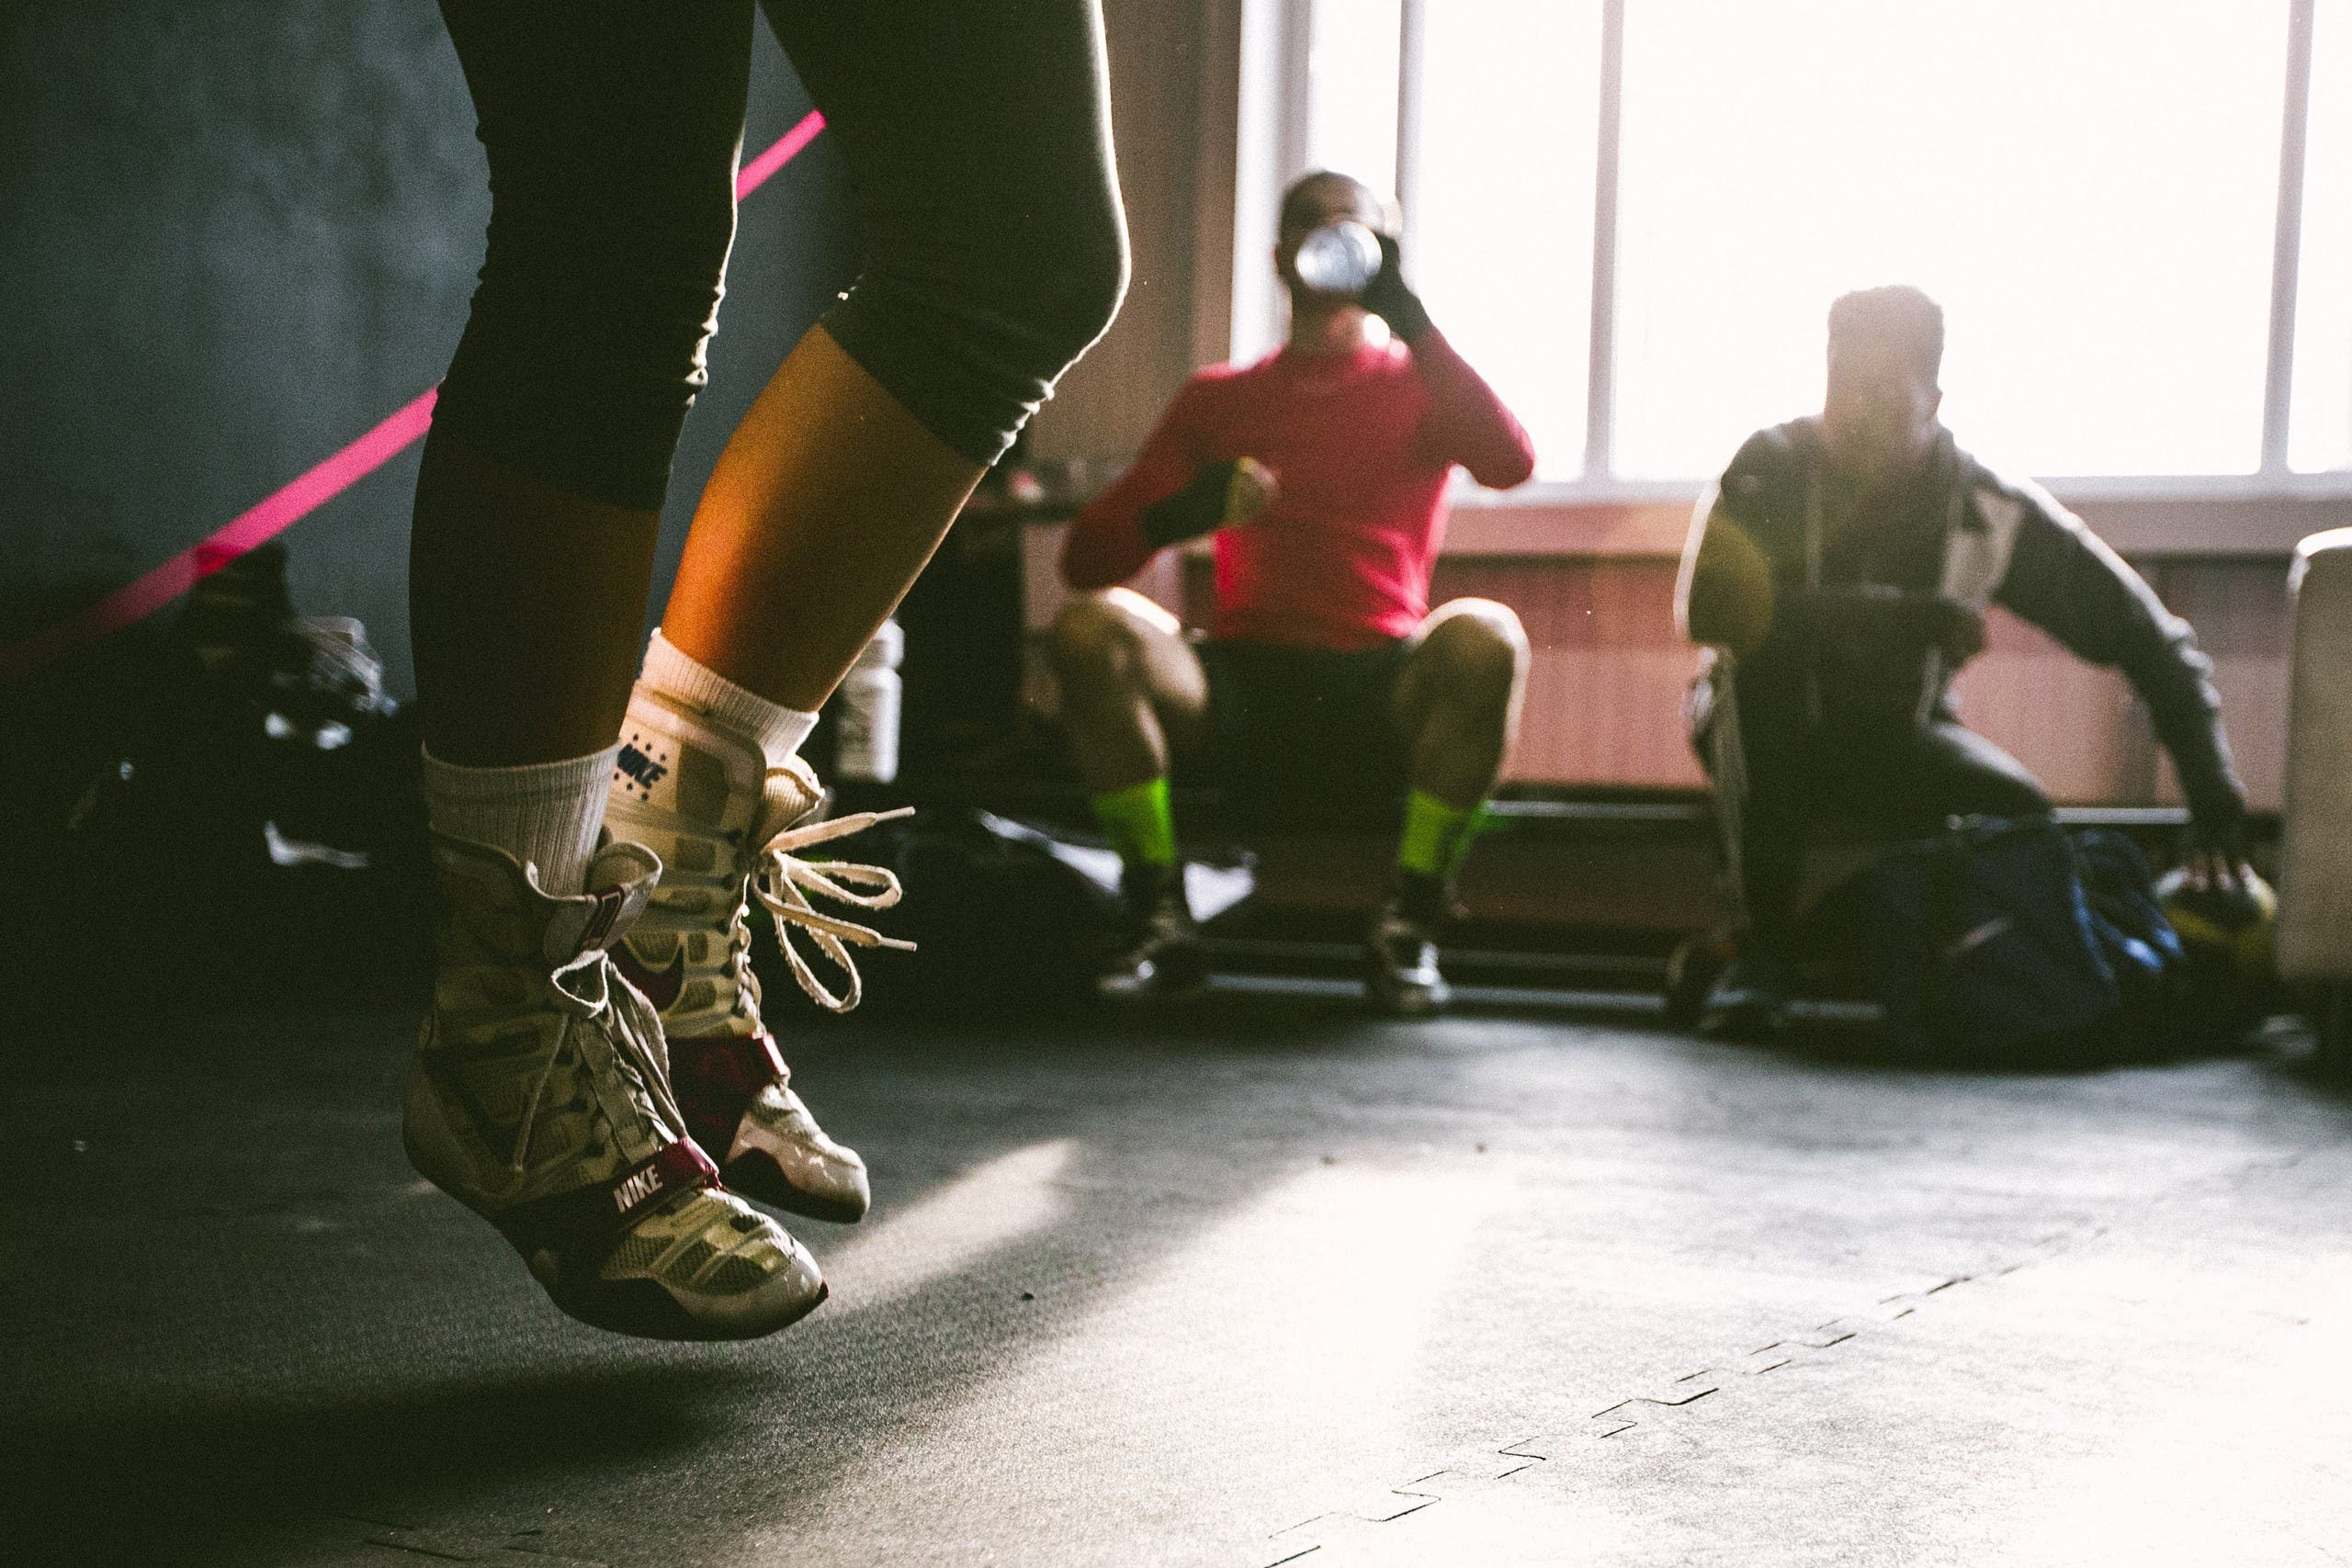 A woman exercises in a gym. (Unsplash, Dylan Nolte)